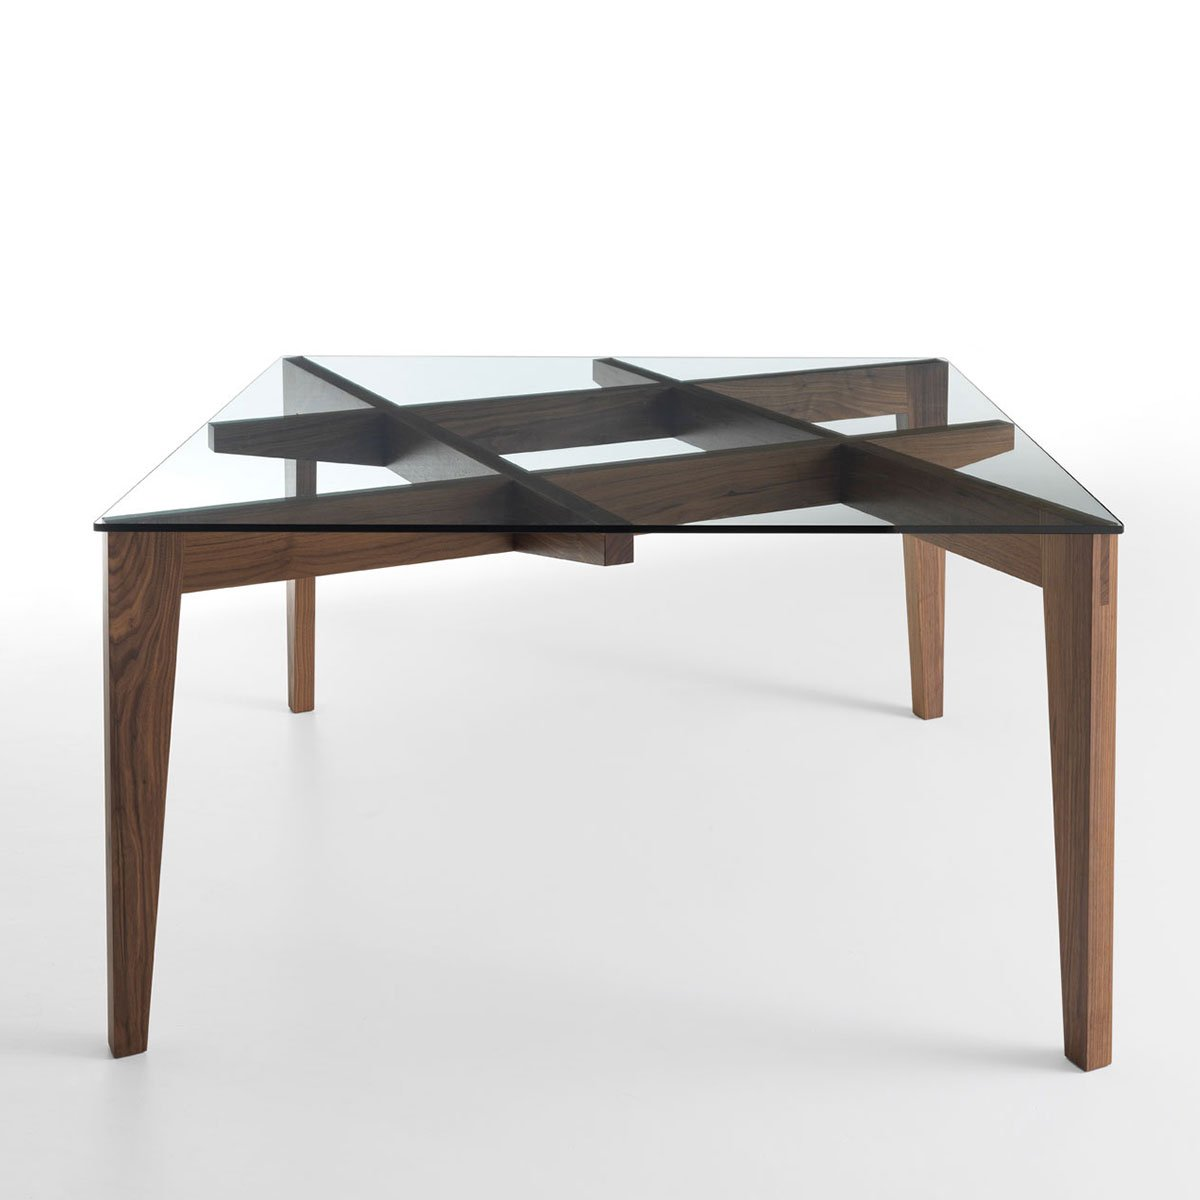 Autoreggente wood glass dining table klarity glass for Dining table designs in wood and glass